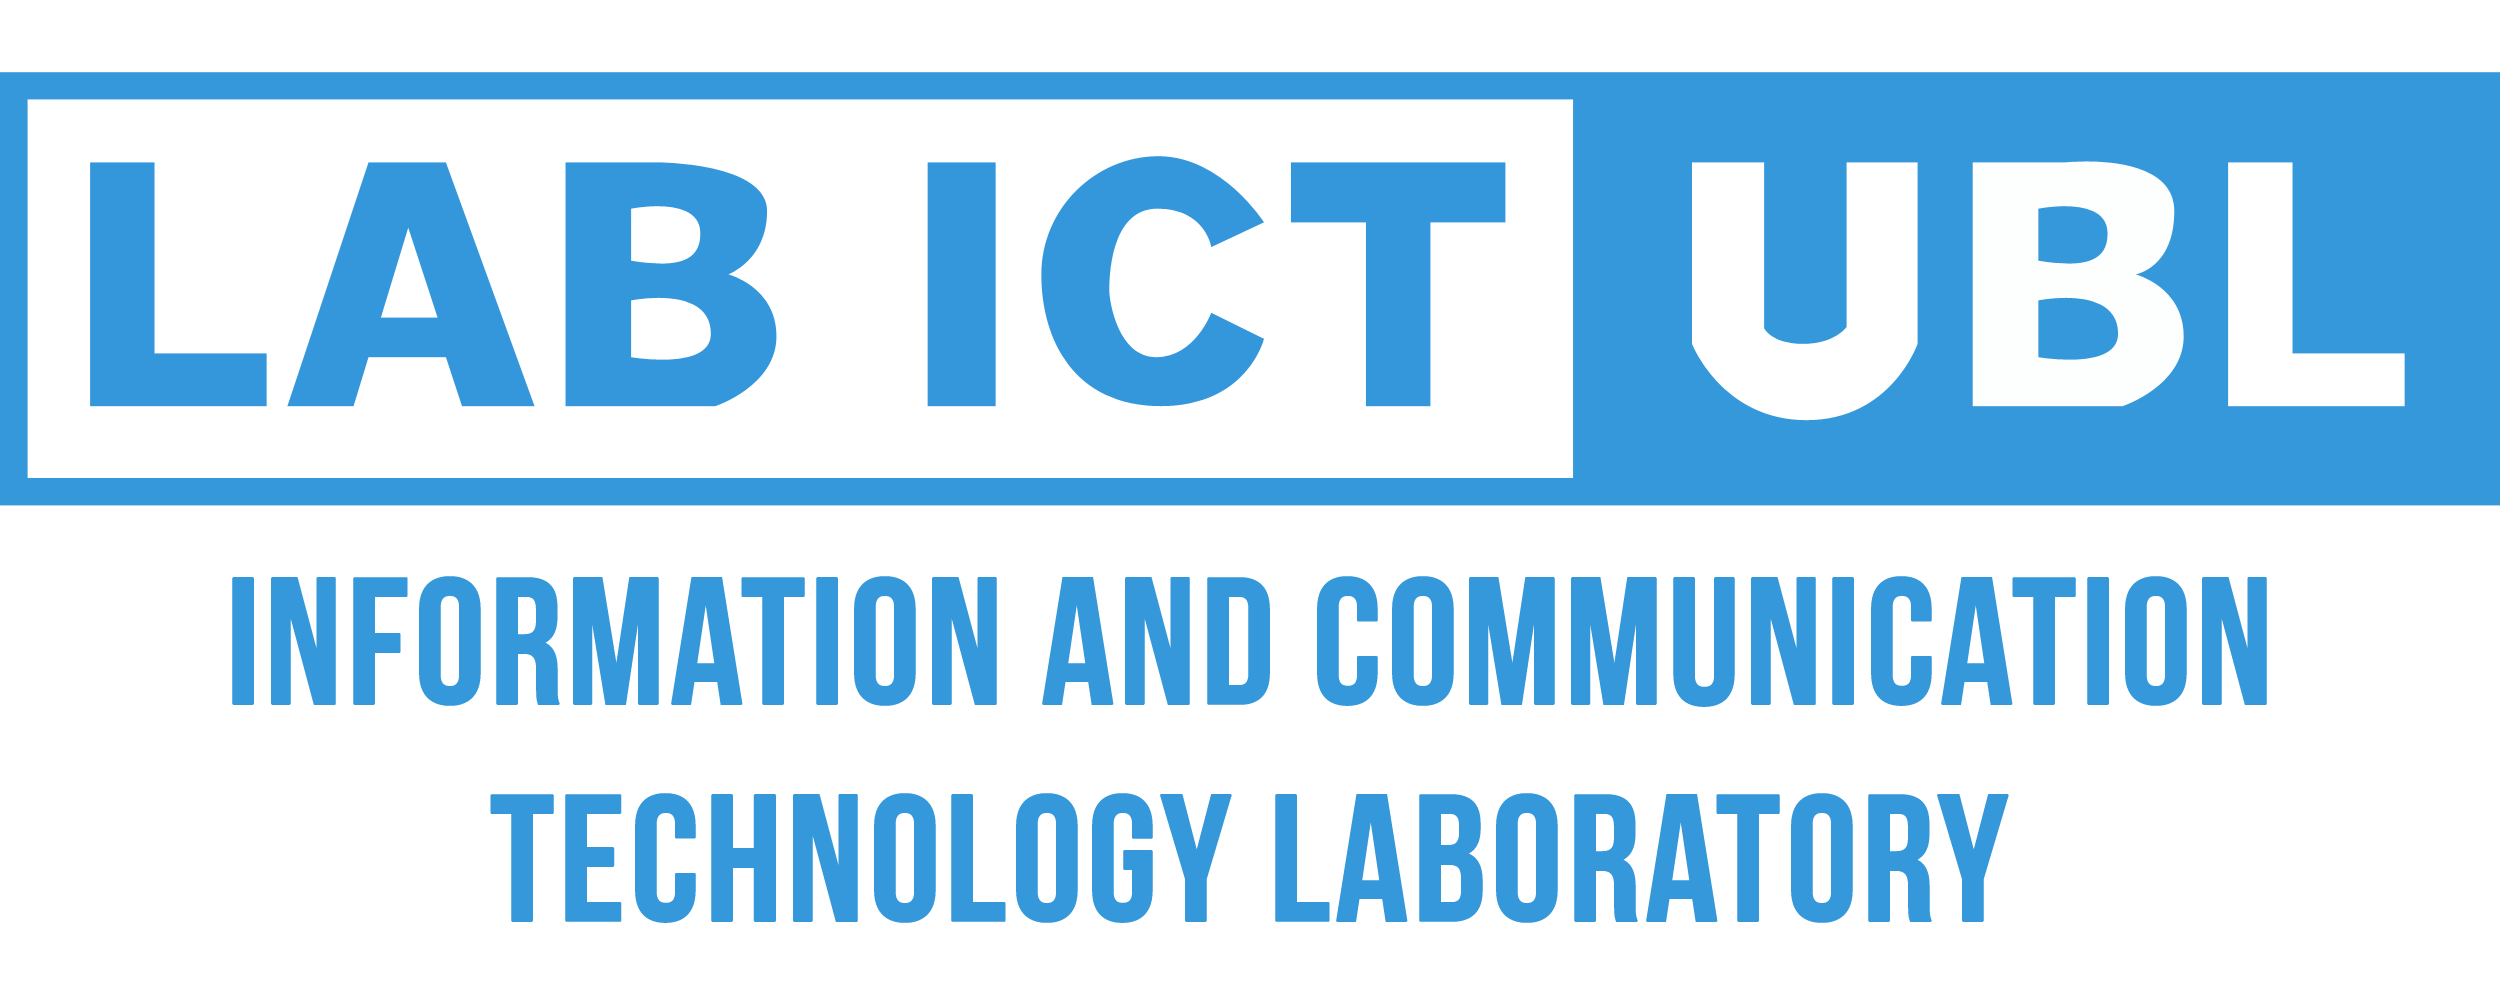 Laboratorium ICT Terpadu Universitas Budi Luhur